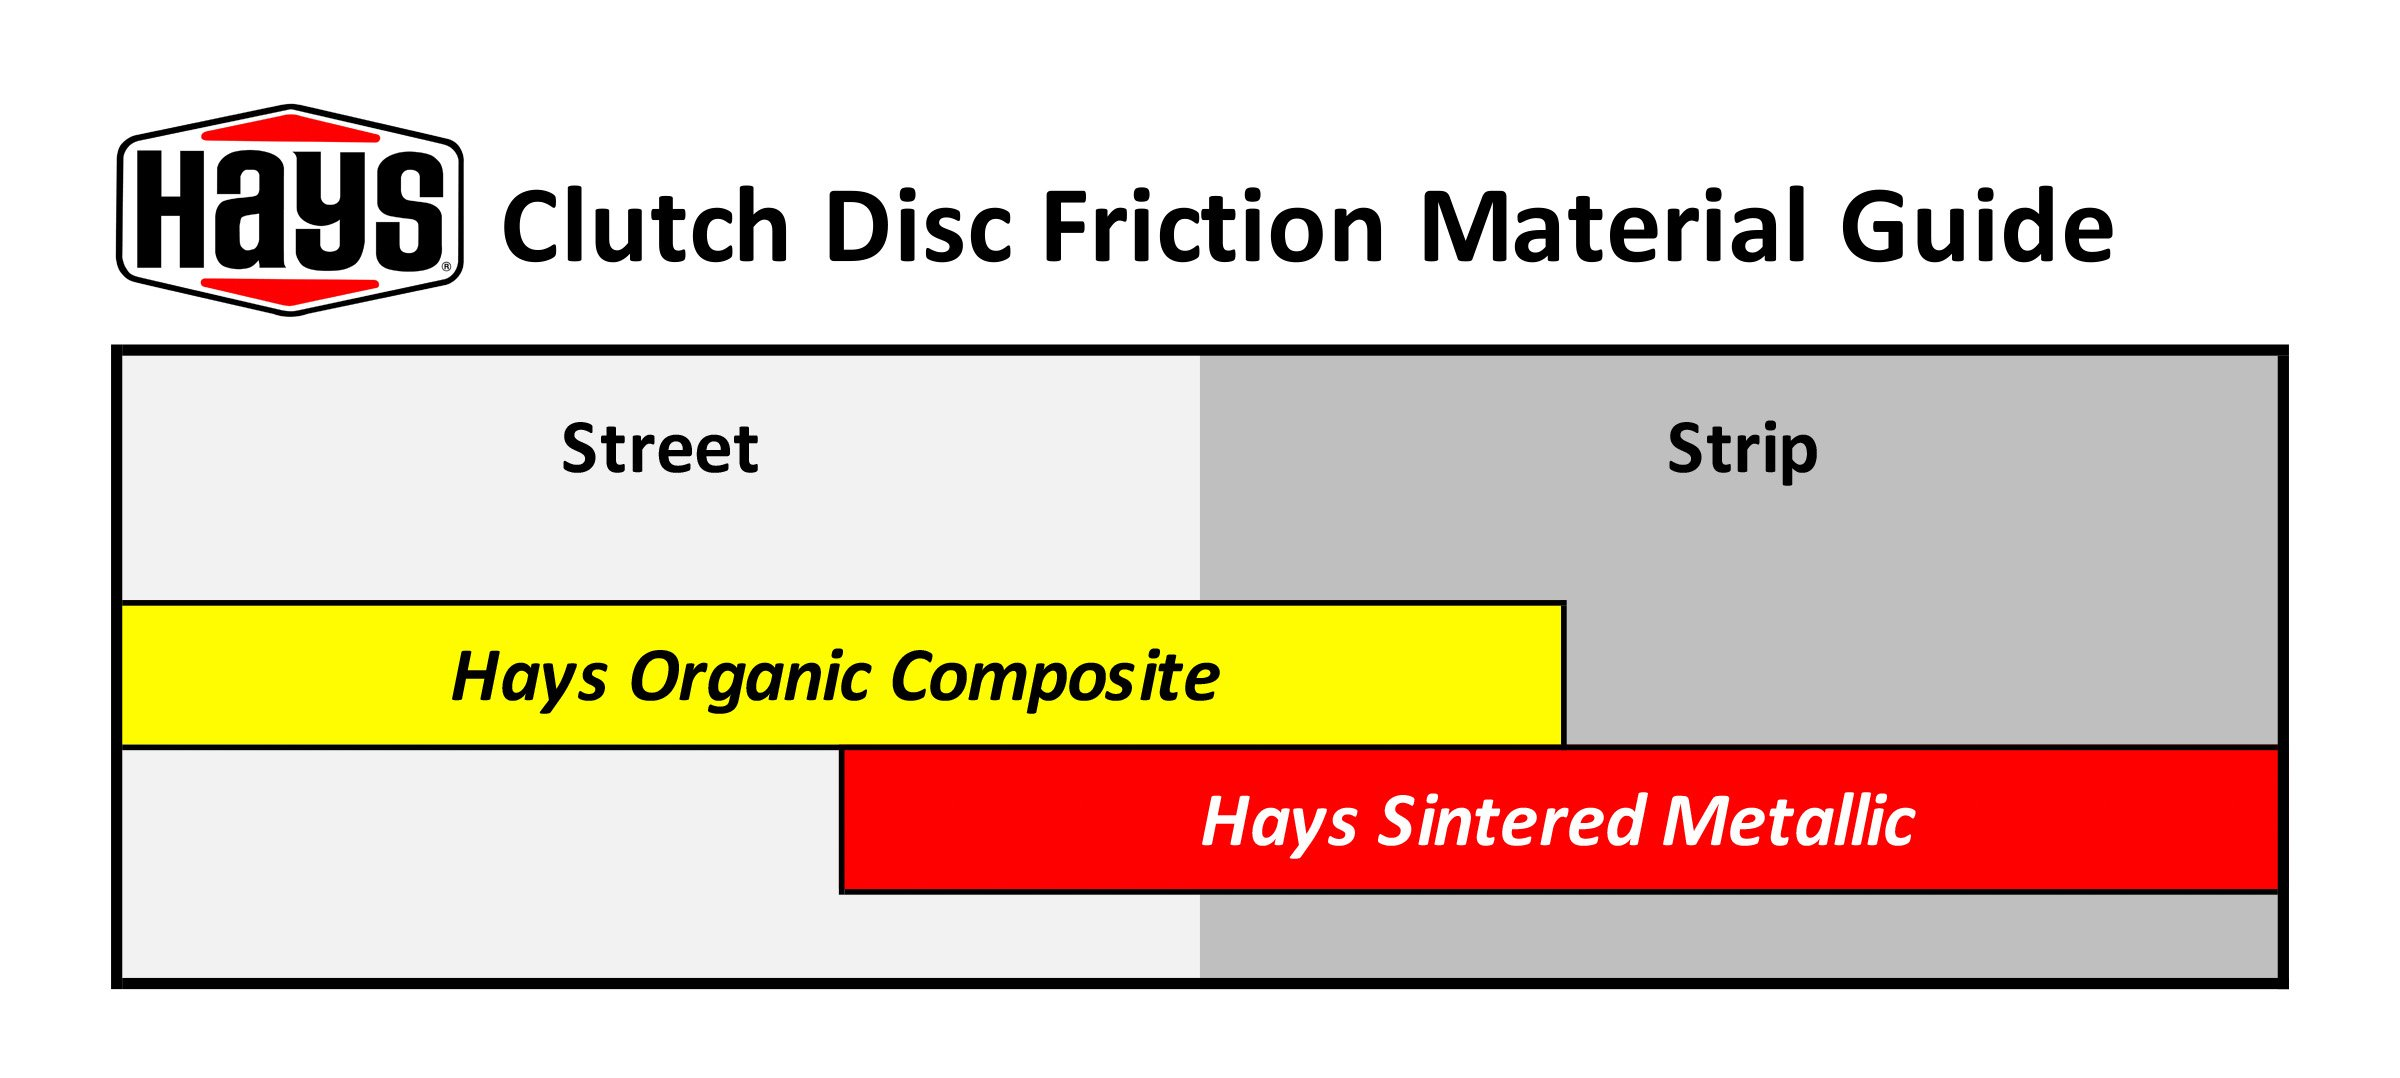 Hays Clutch Friction Guide